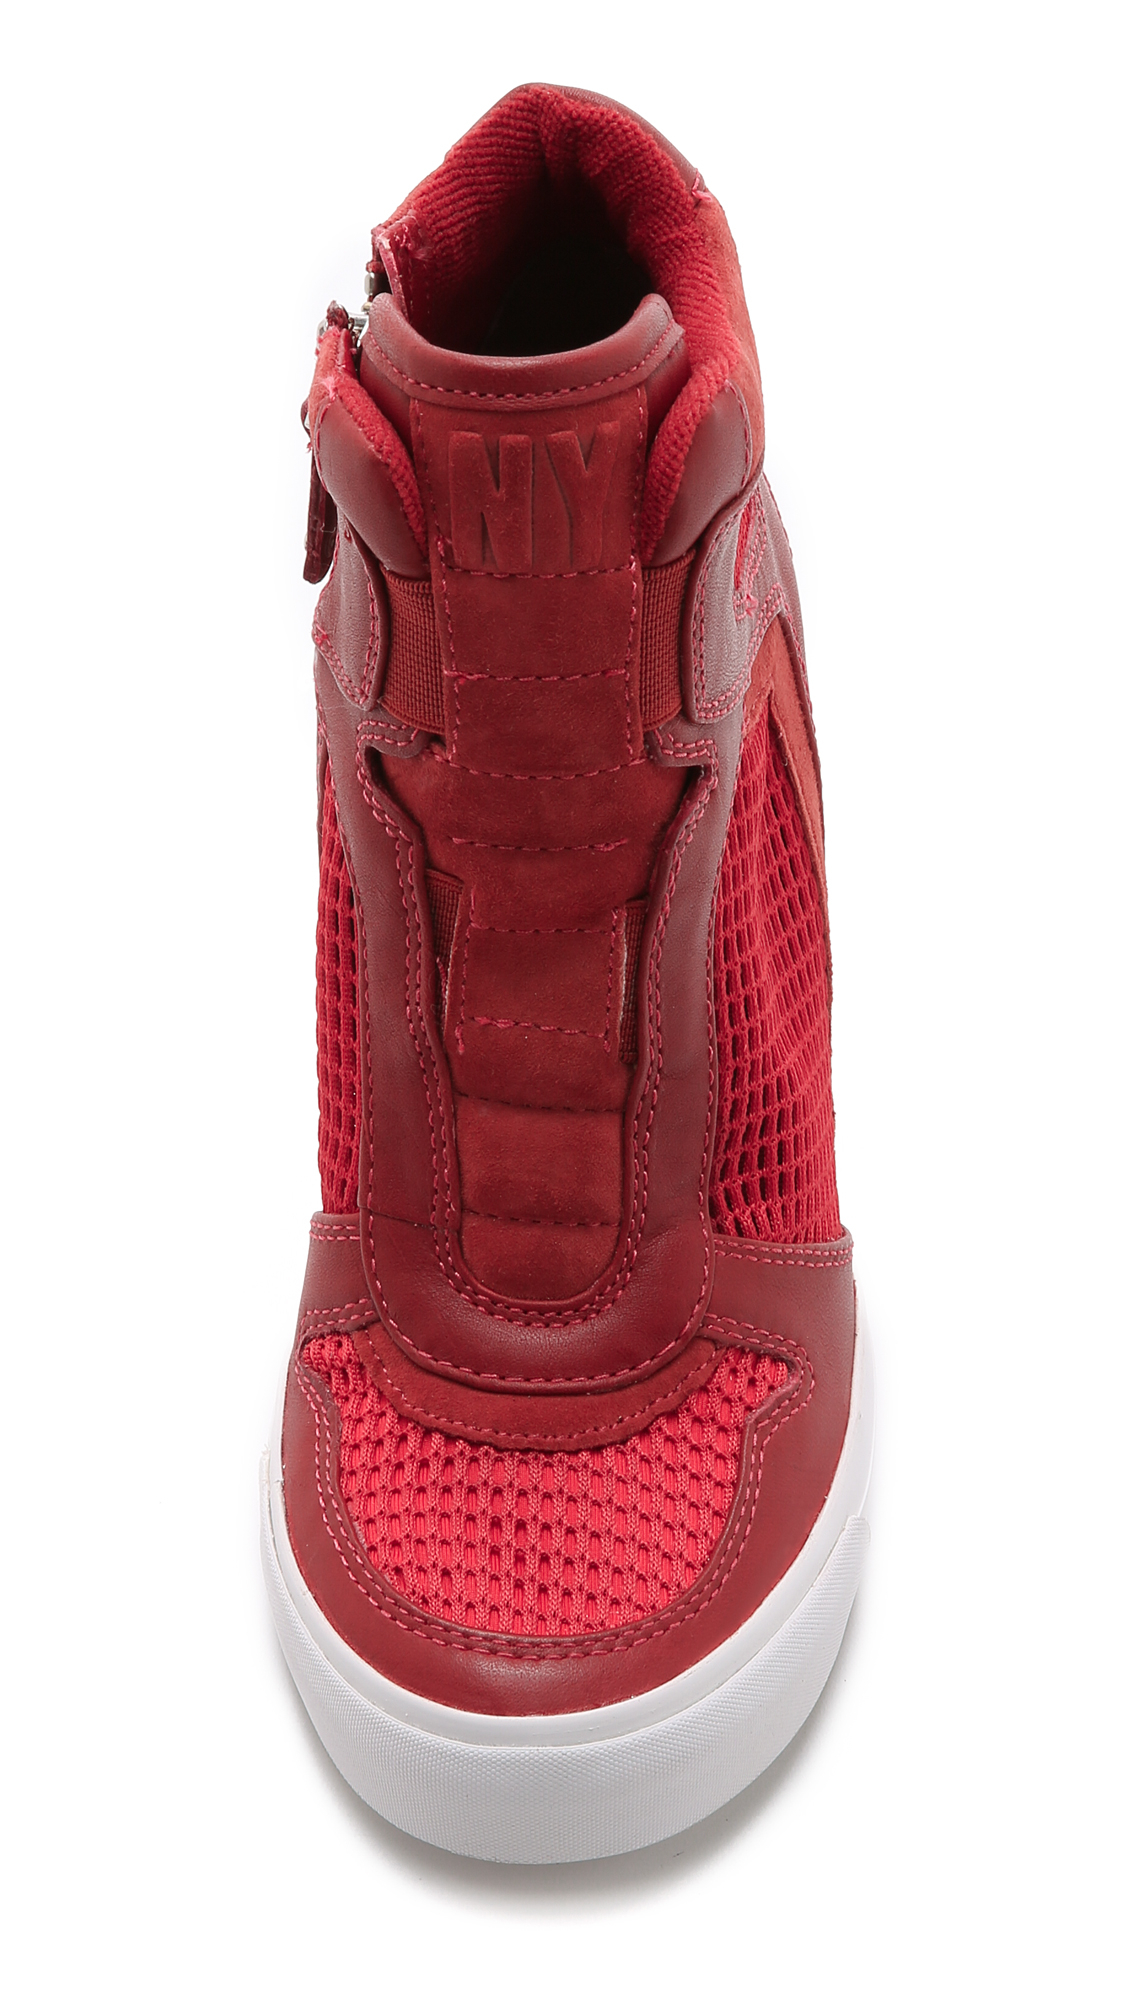 5ea6d2bef12f Lyst - DKNY Grand Wedge Sneakers - Brick Red bright Flame in Red